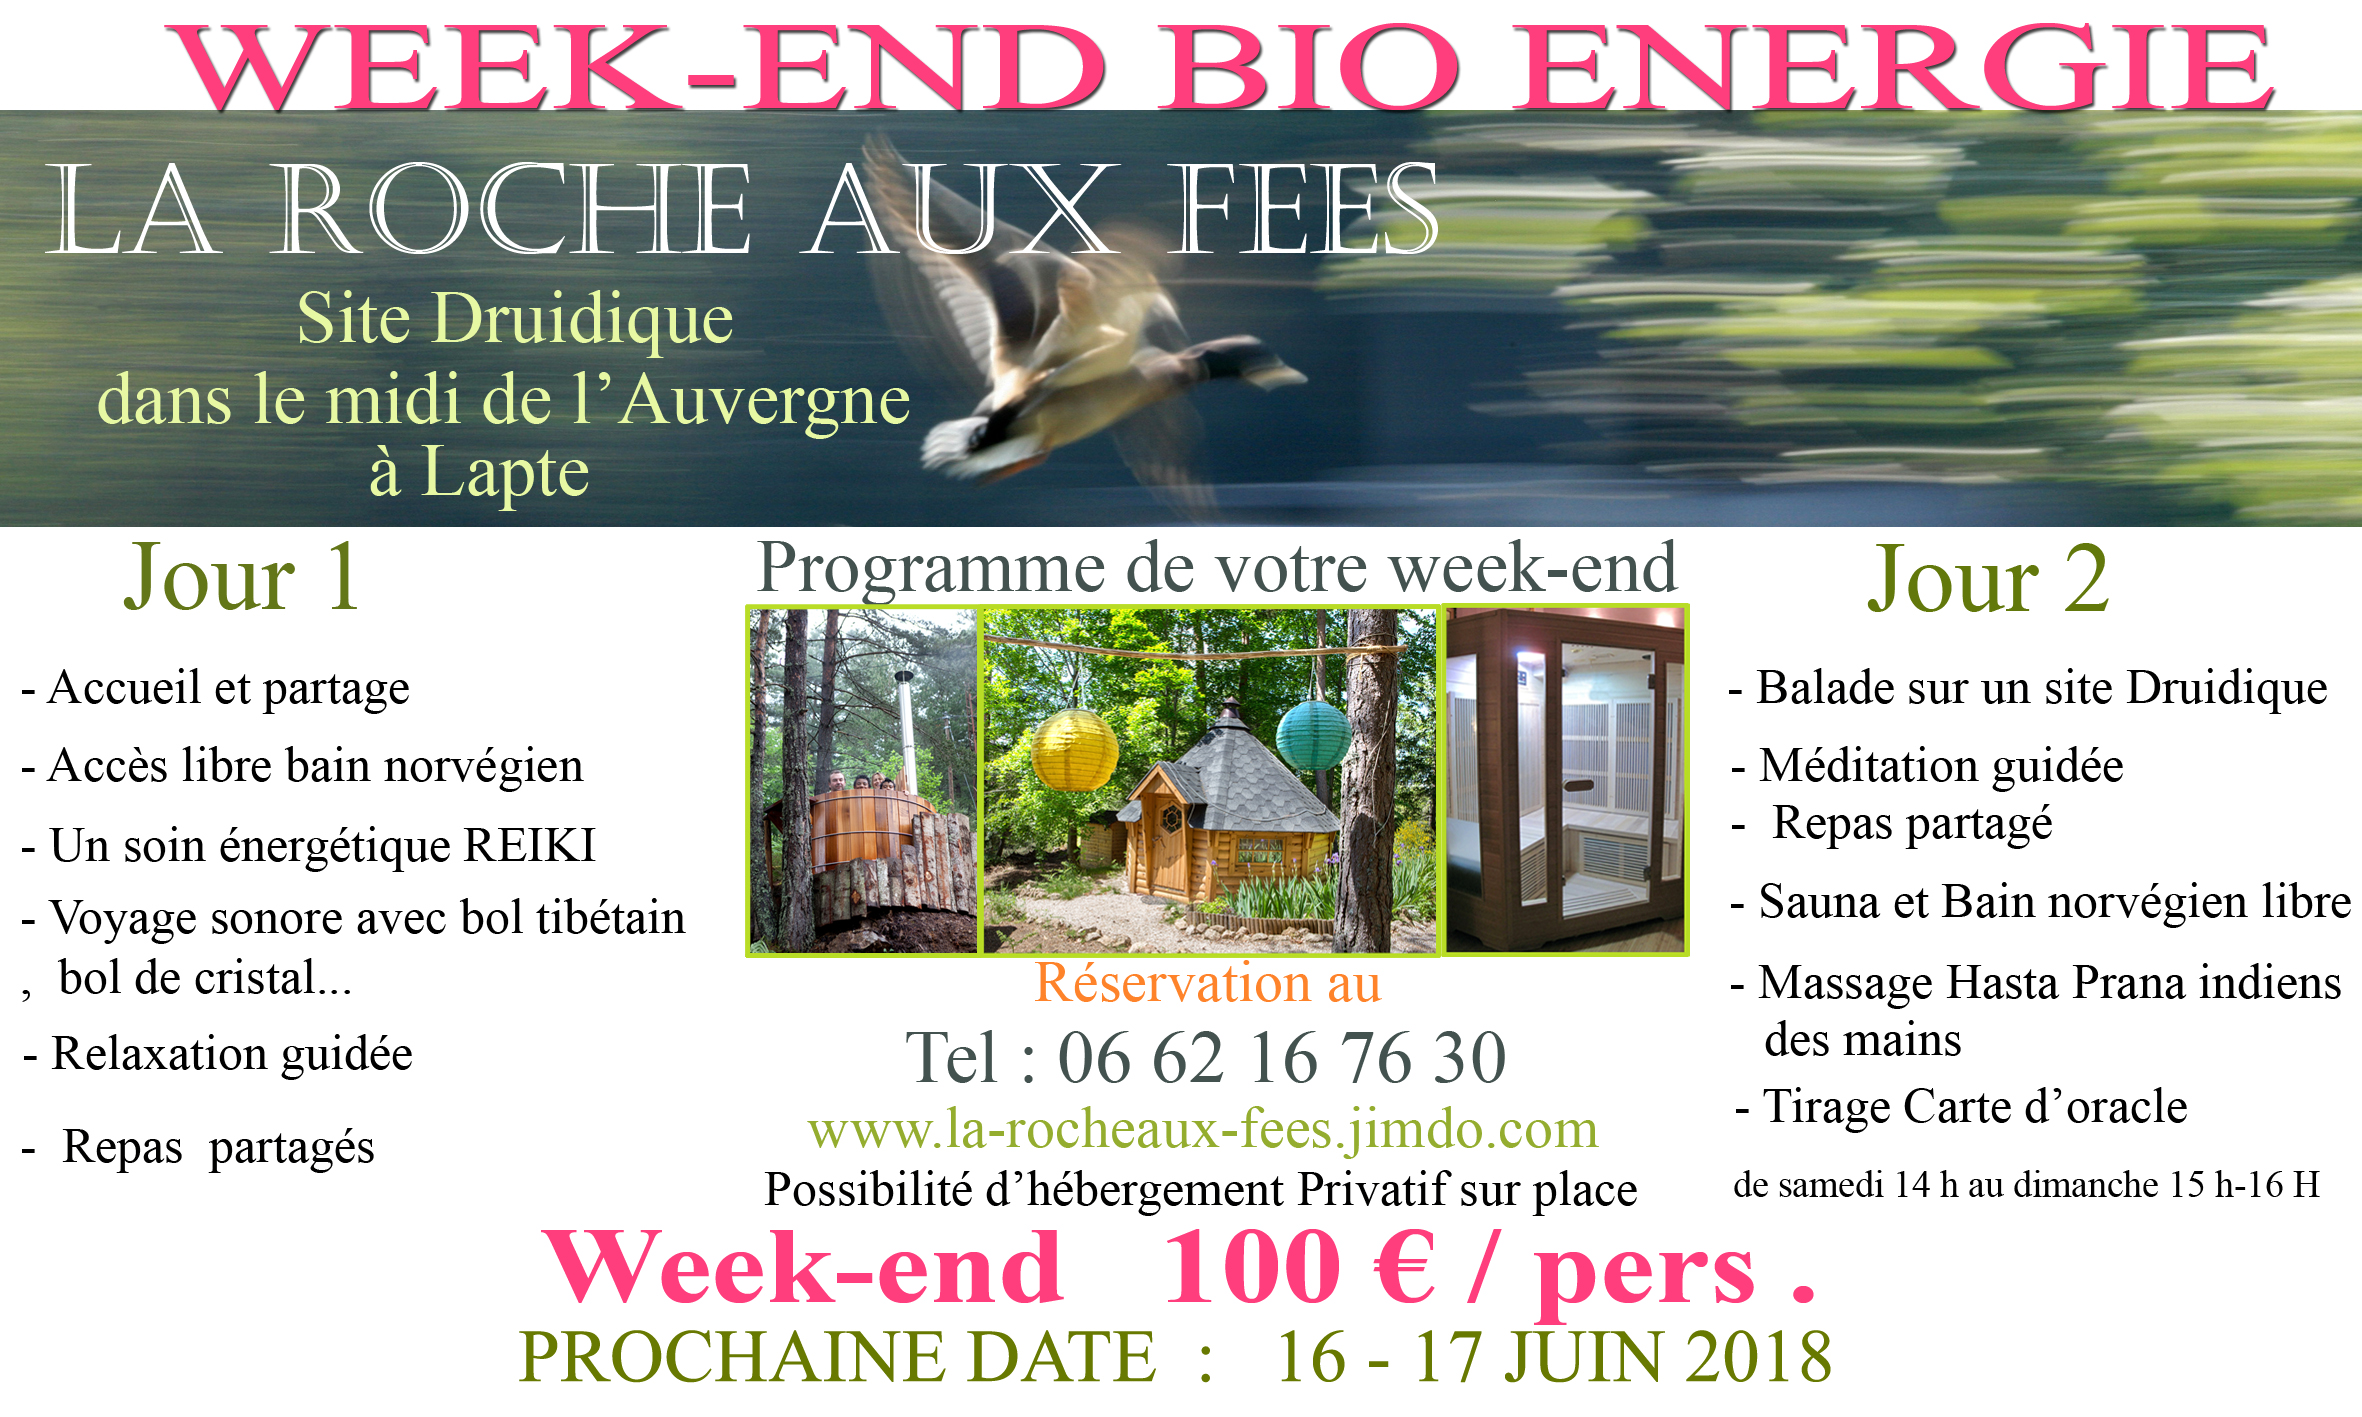 http://www.france-voyage.com/chambres-hotes/site.php?prop_id=88085